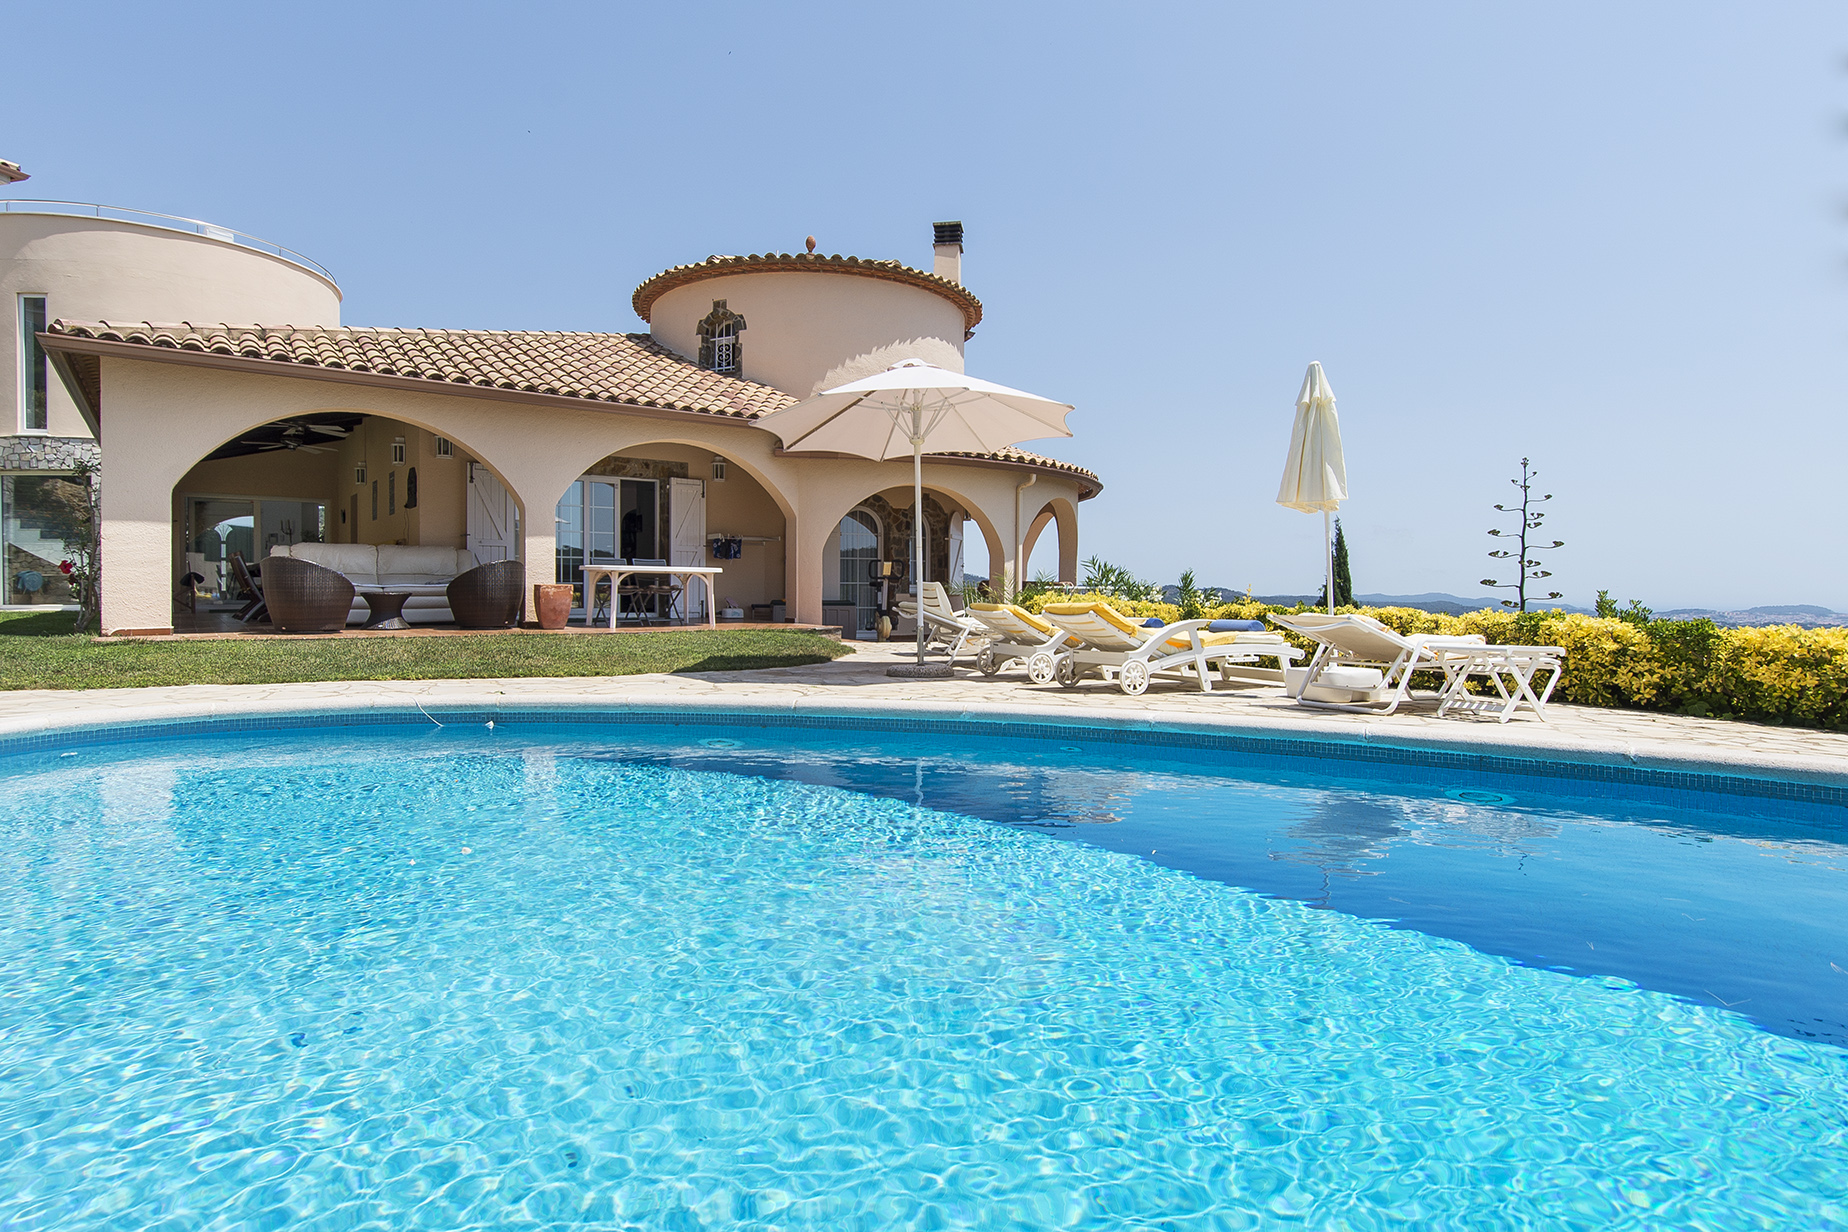 Single Family Home for Sale at Spacious villa with panoramic views Sant Antoni De Calonge, Costa Brava 17252 Spain